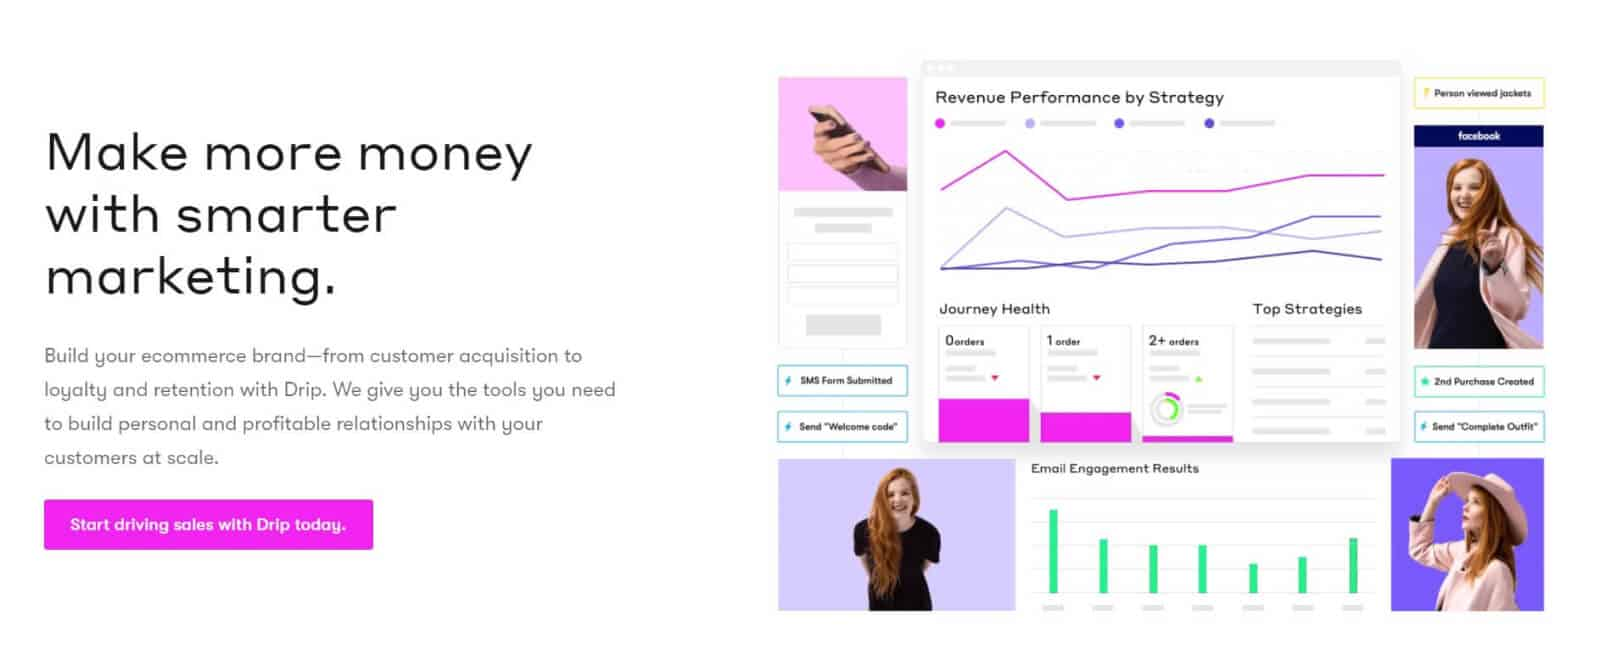 Drip is an email marketing service designed to empower ecommerce startups